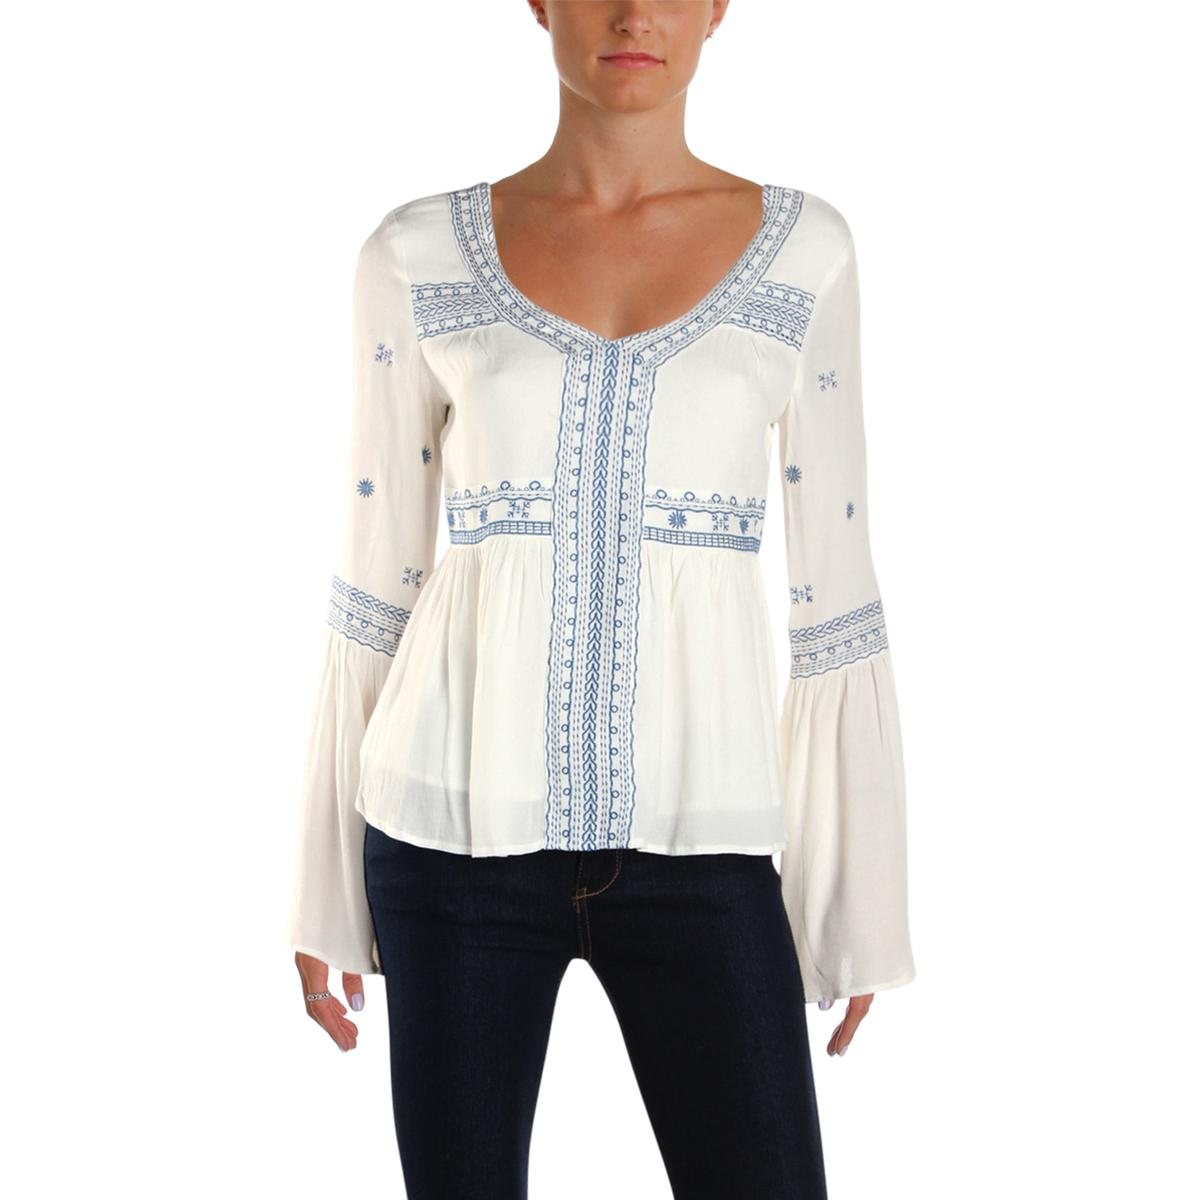 550b7da03c113 Details about Aqua Womens Ivory Bell Sleeves Embroidered Peplum Peasant Top  Blouse S BHFO 7667